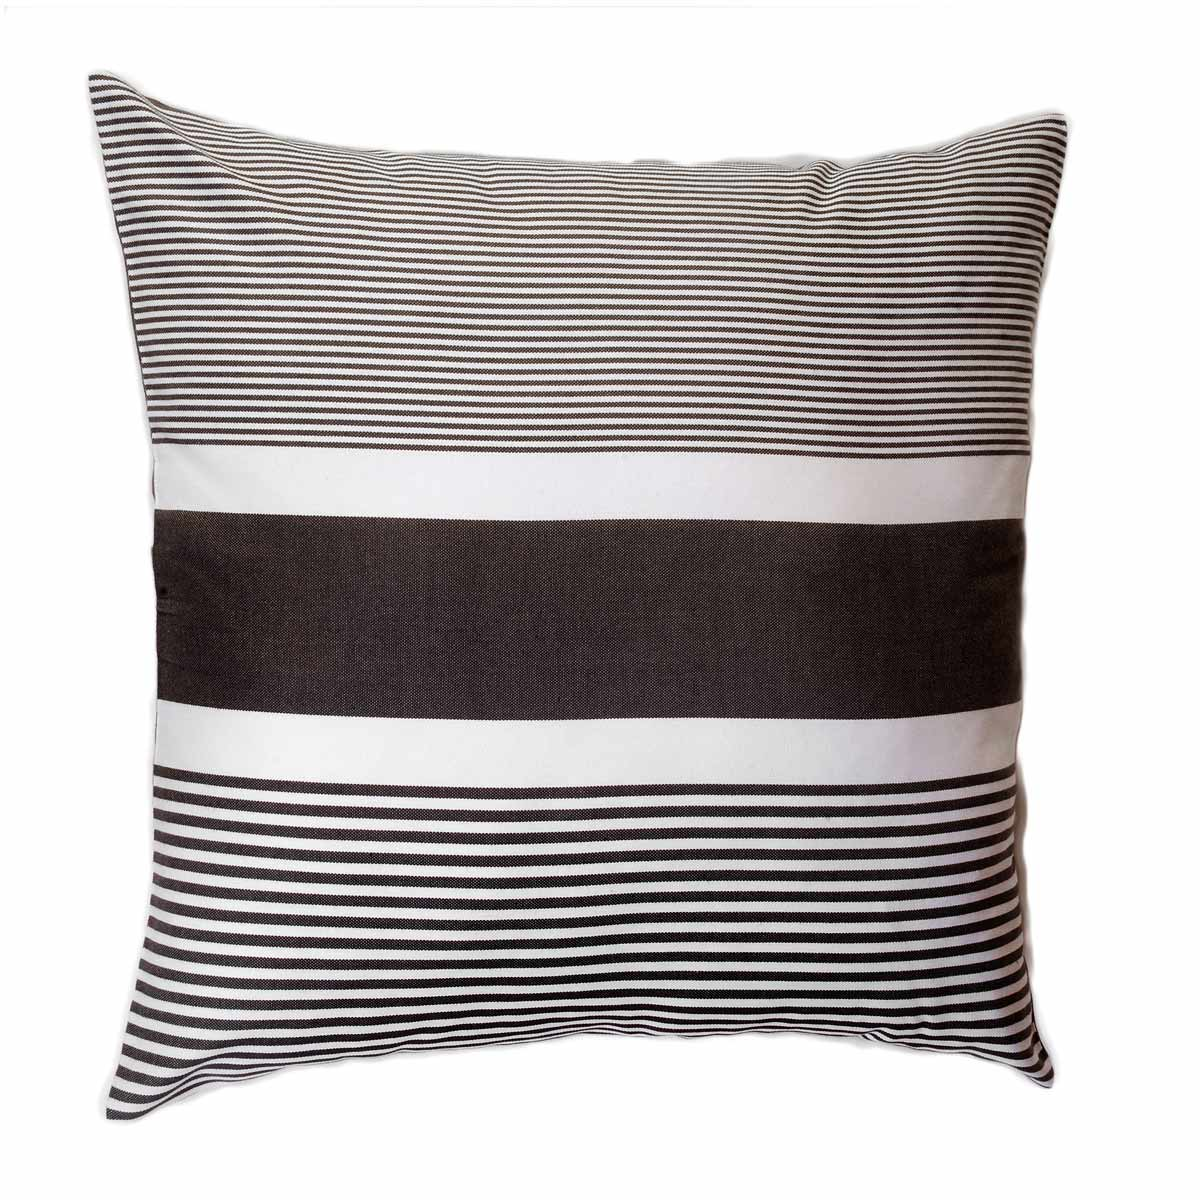 CARTHAGE - Housse de coussin coton anthracite rayures blanches 60 x 60